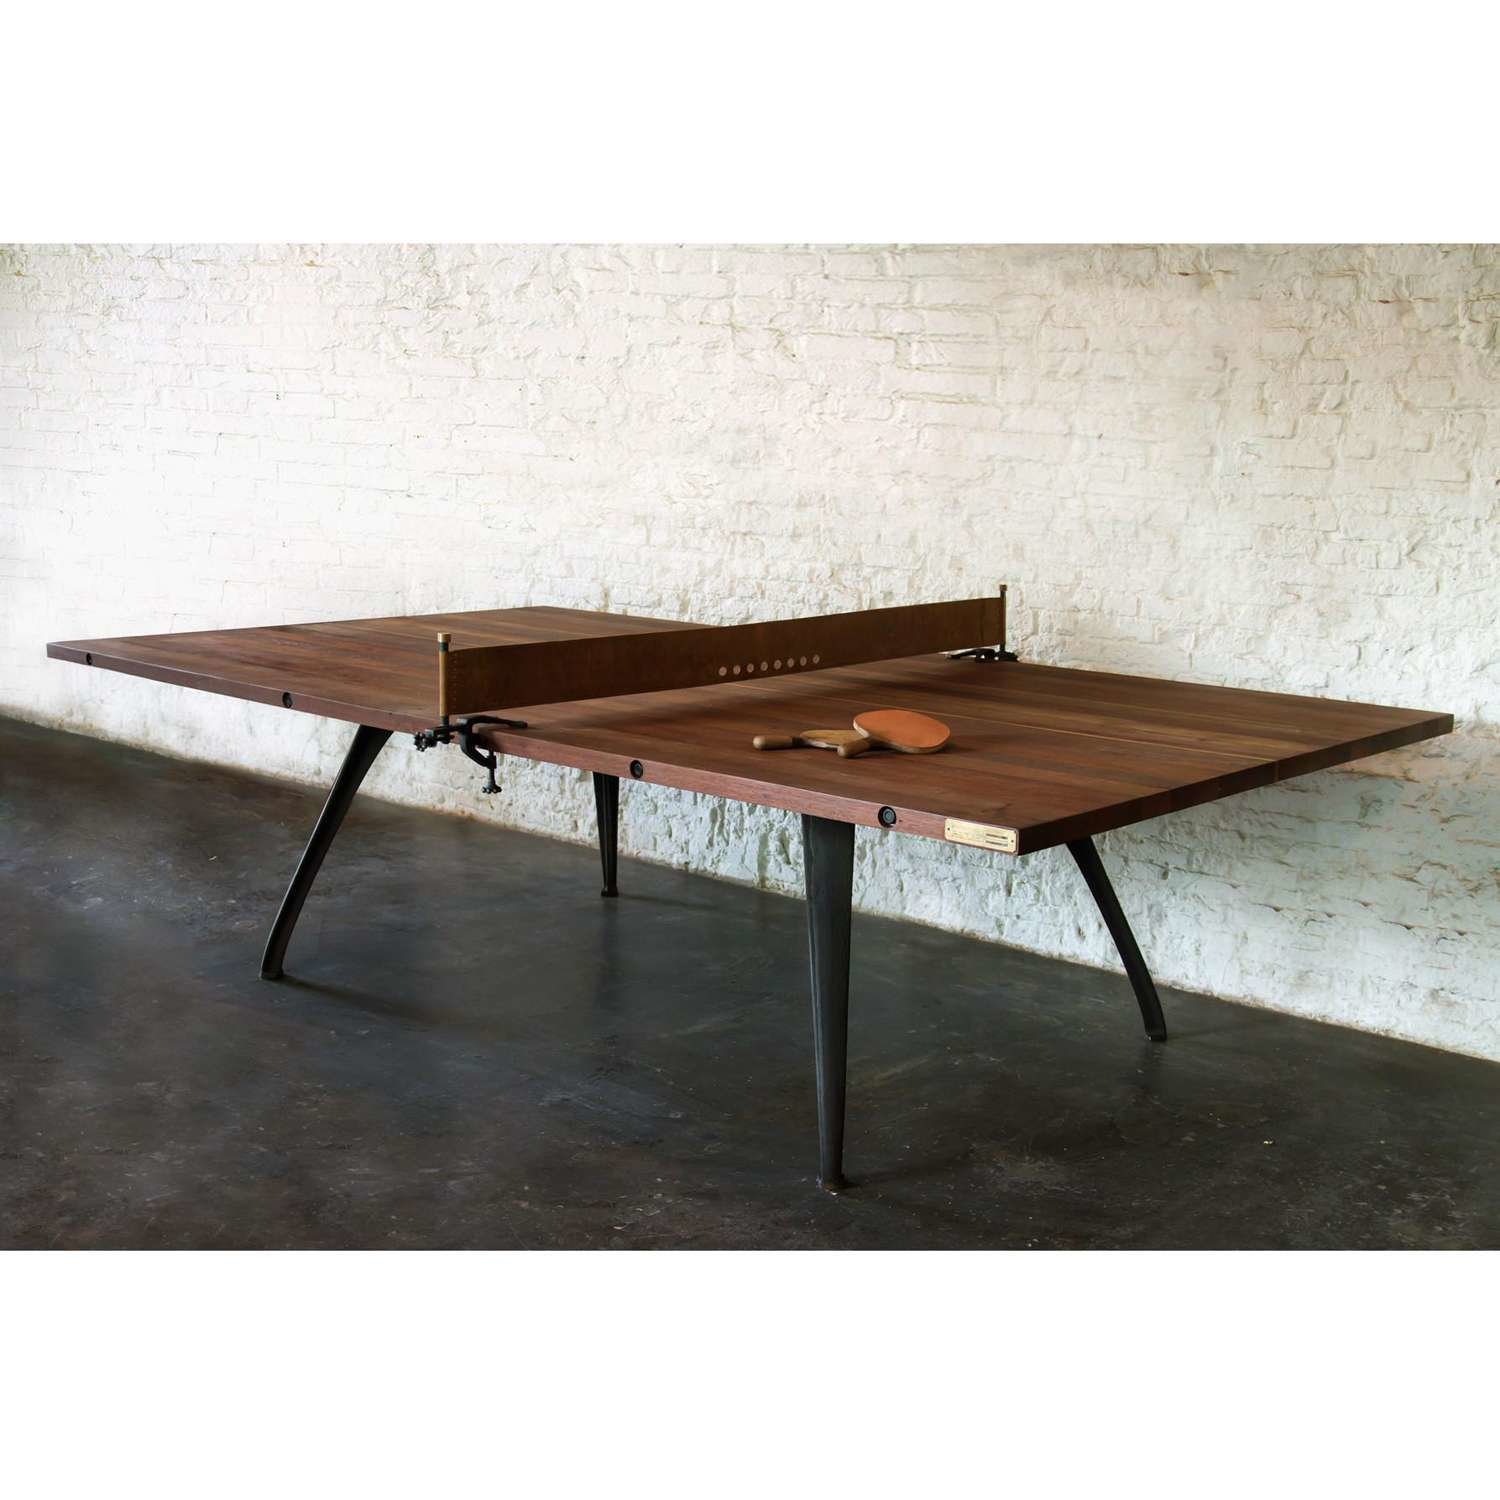 Ping Pong Table from District Eight by YLiving Dwell